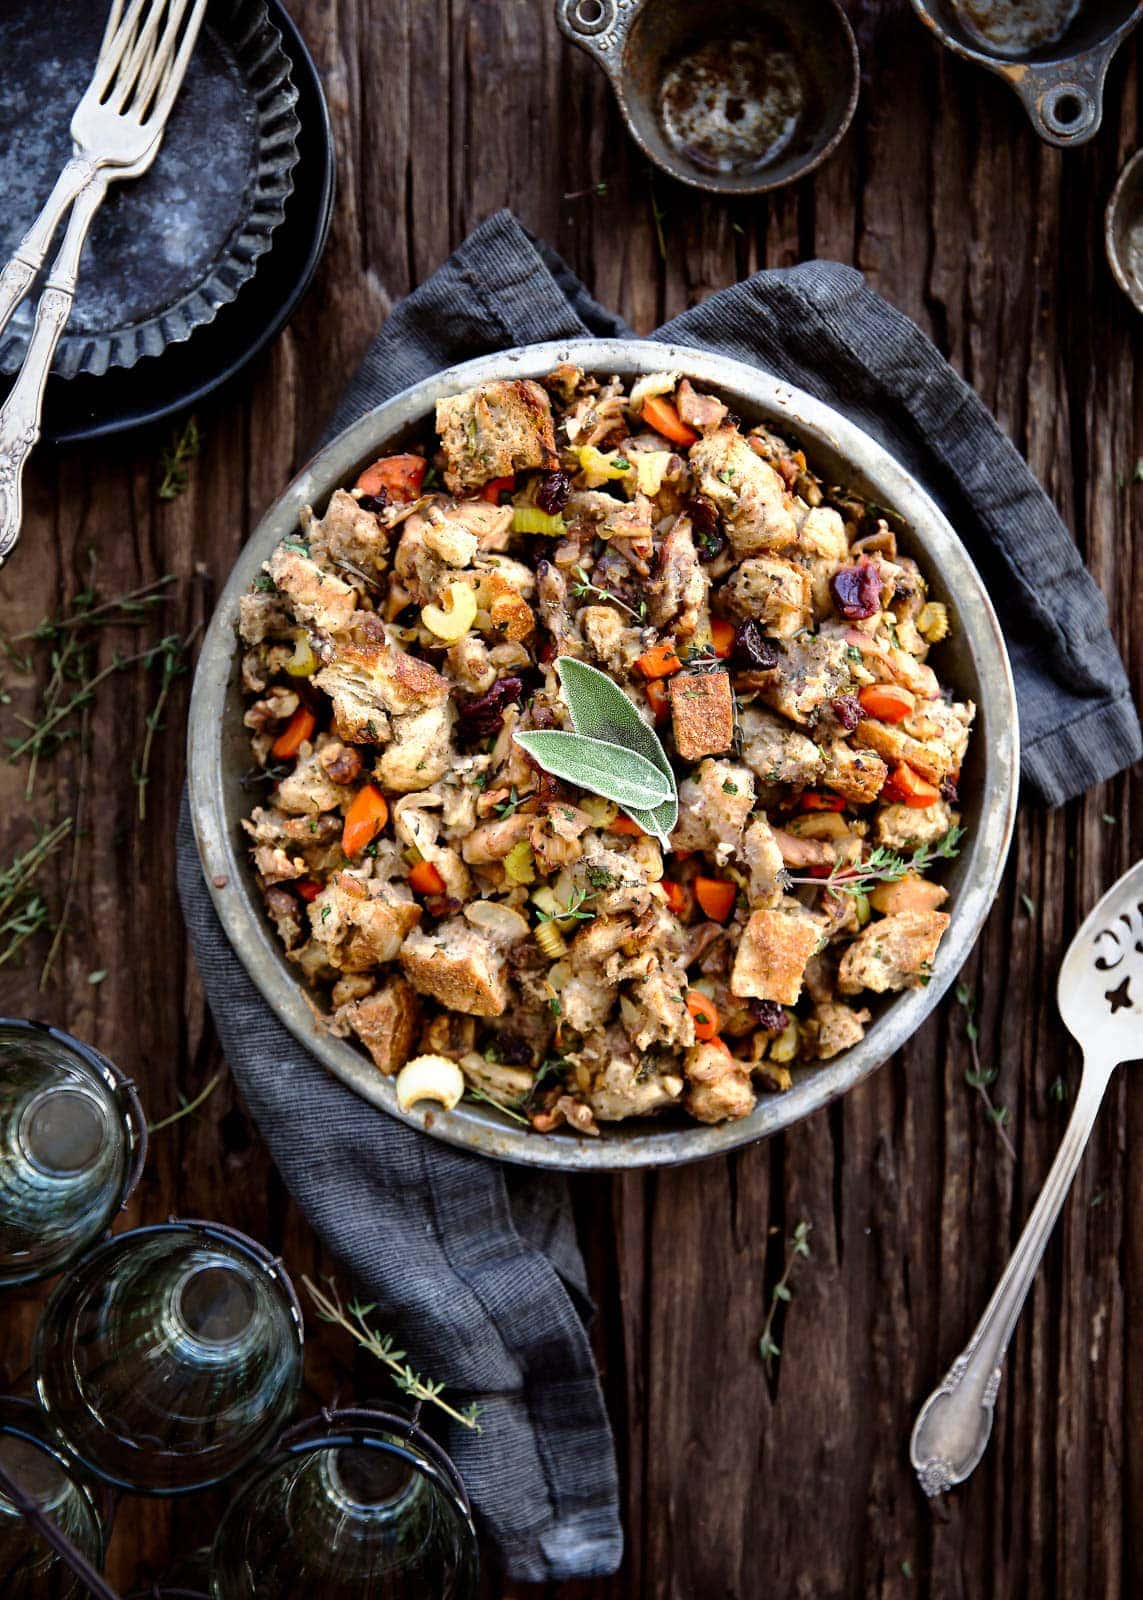 The best part of Thanksgiving is stuffing. So why not make the ultimate Thanksgiving stuffing with sourdough, dark meat chicken, dried cherries, walnuts, and loads of herbs?